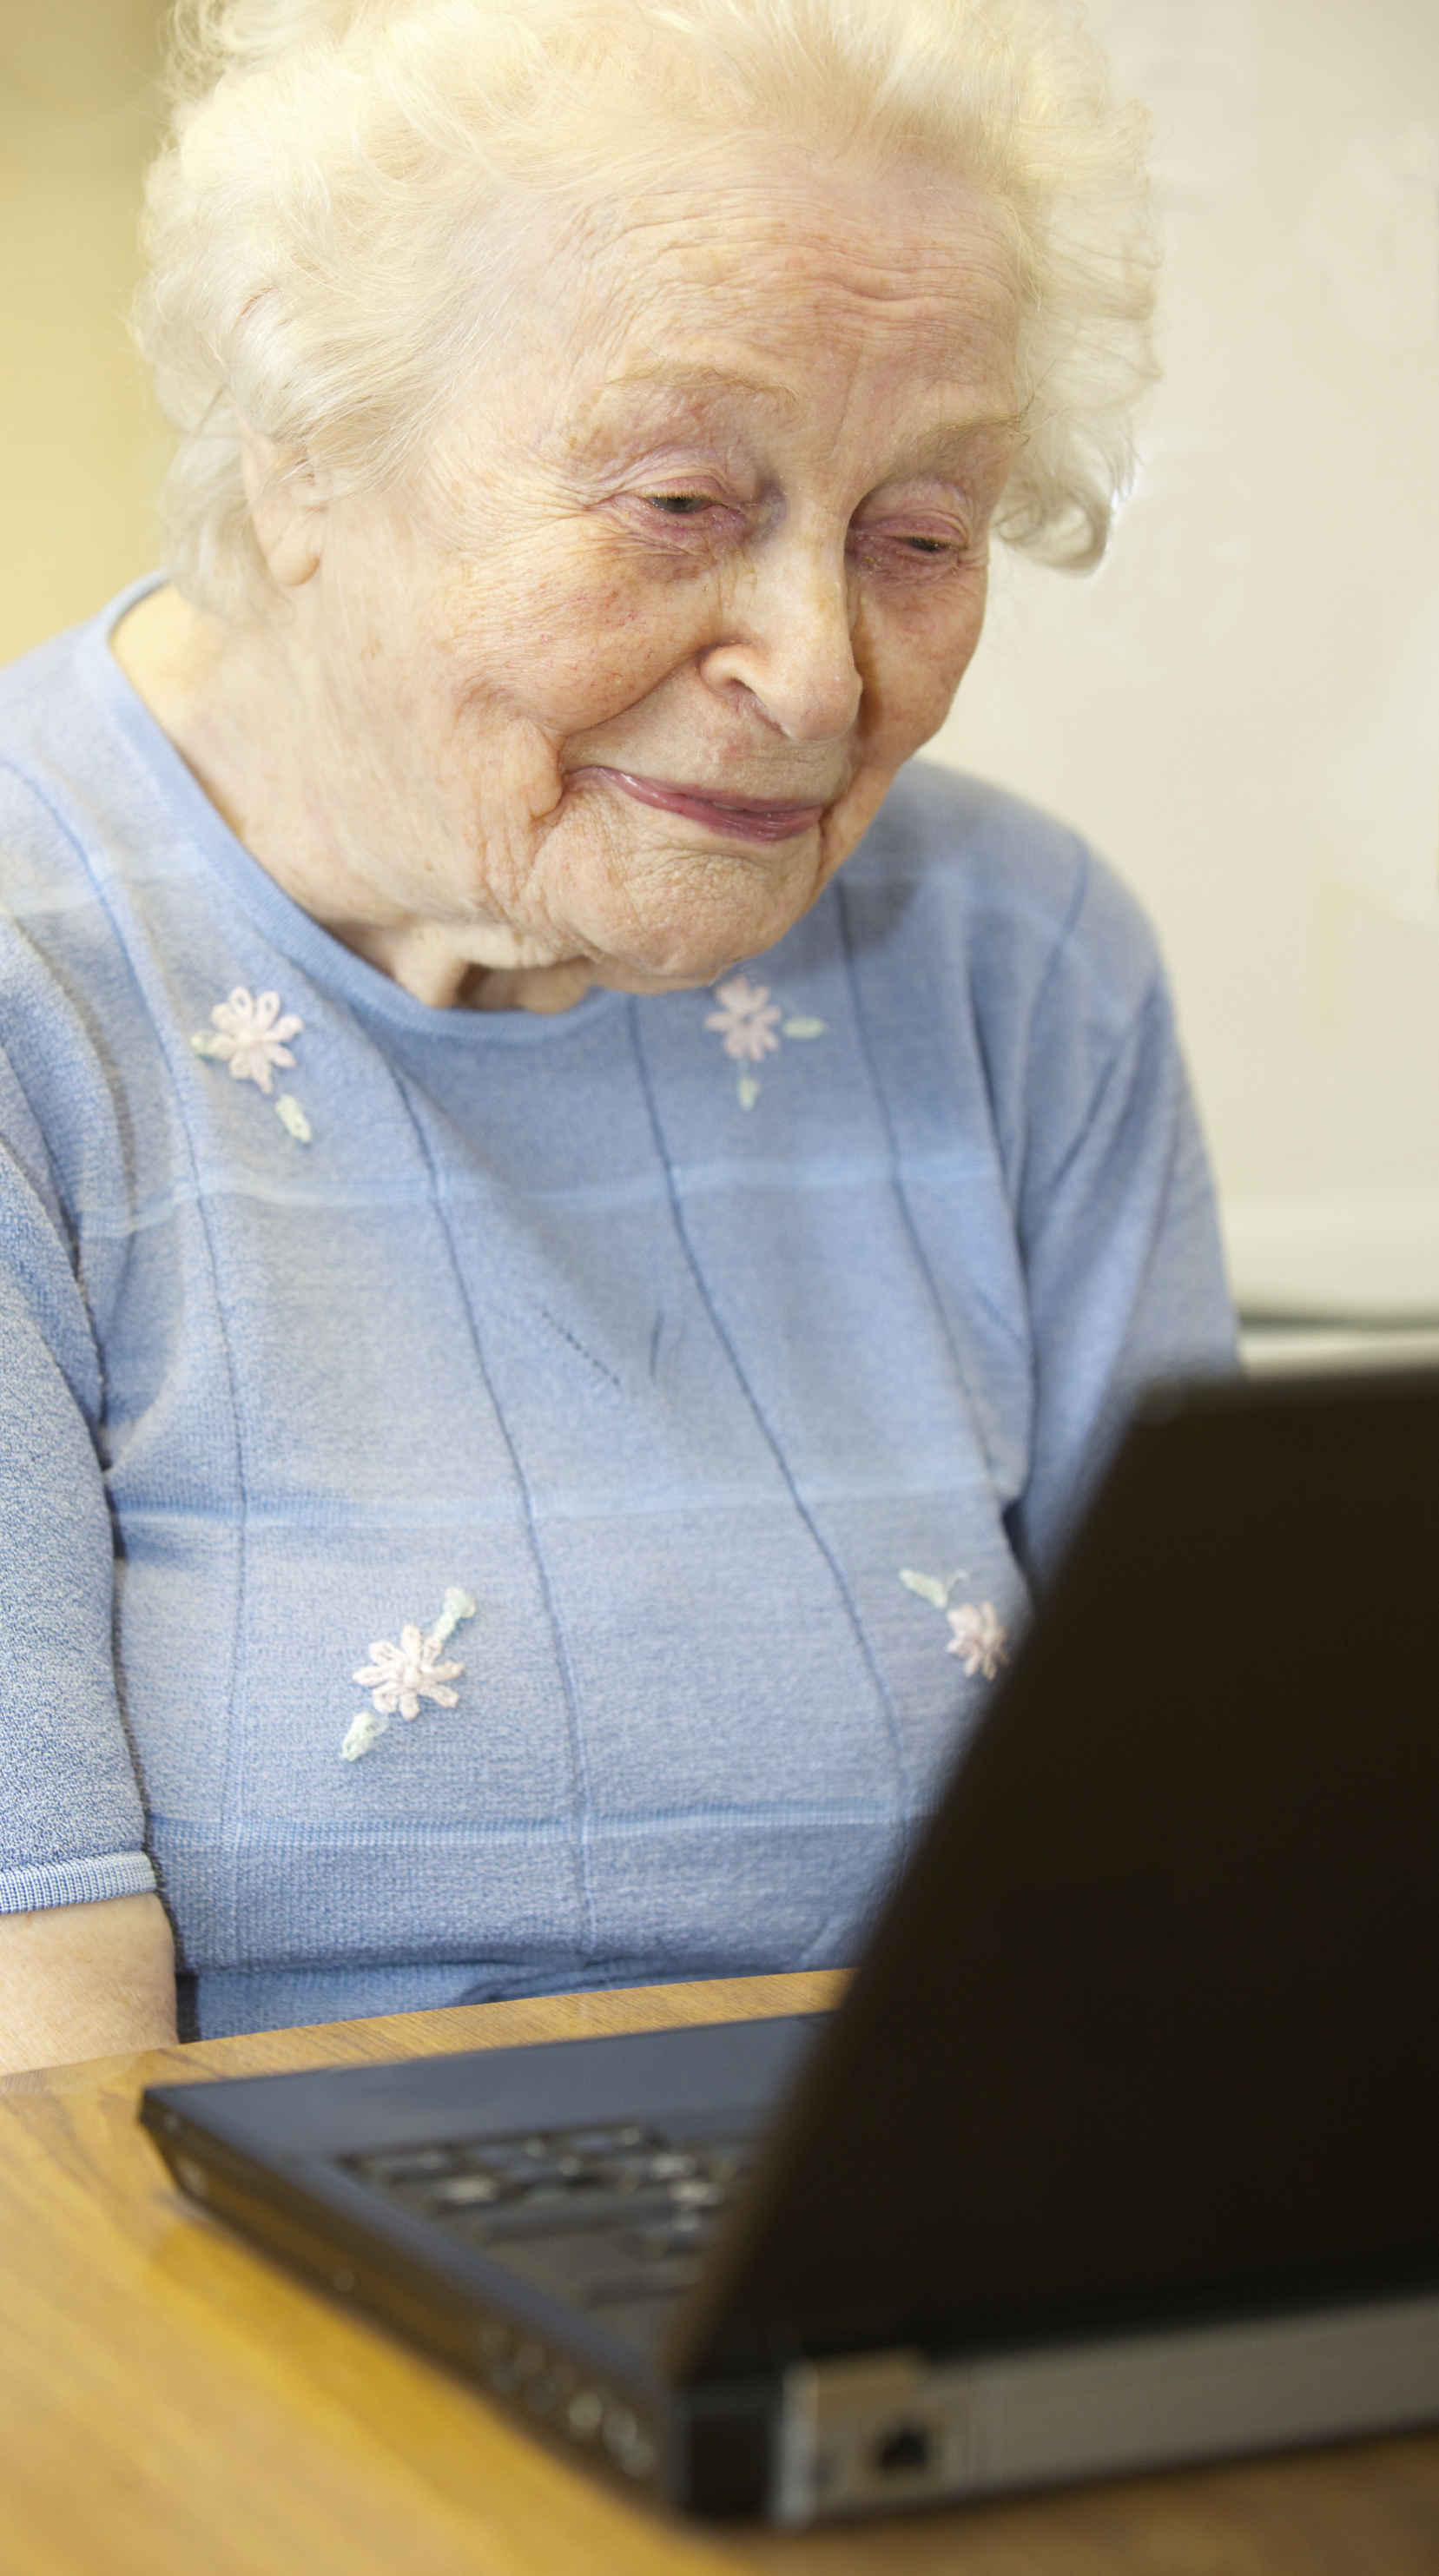 minnesota assisted living information - minnesota elder abuse and